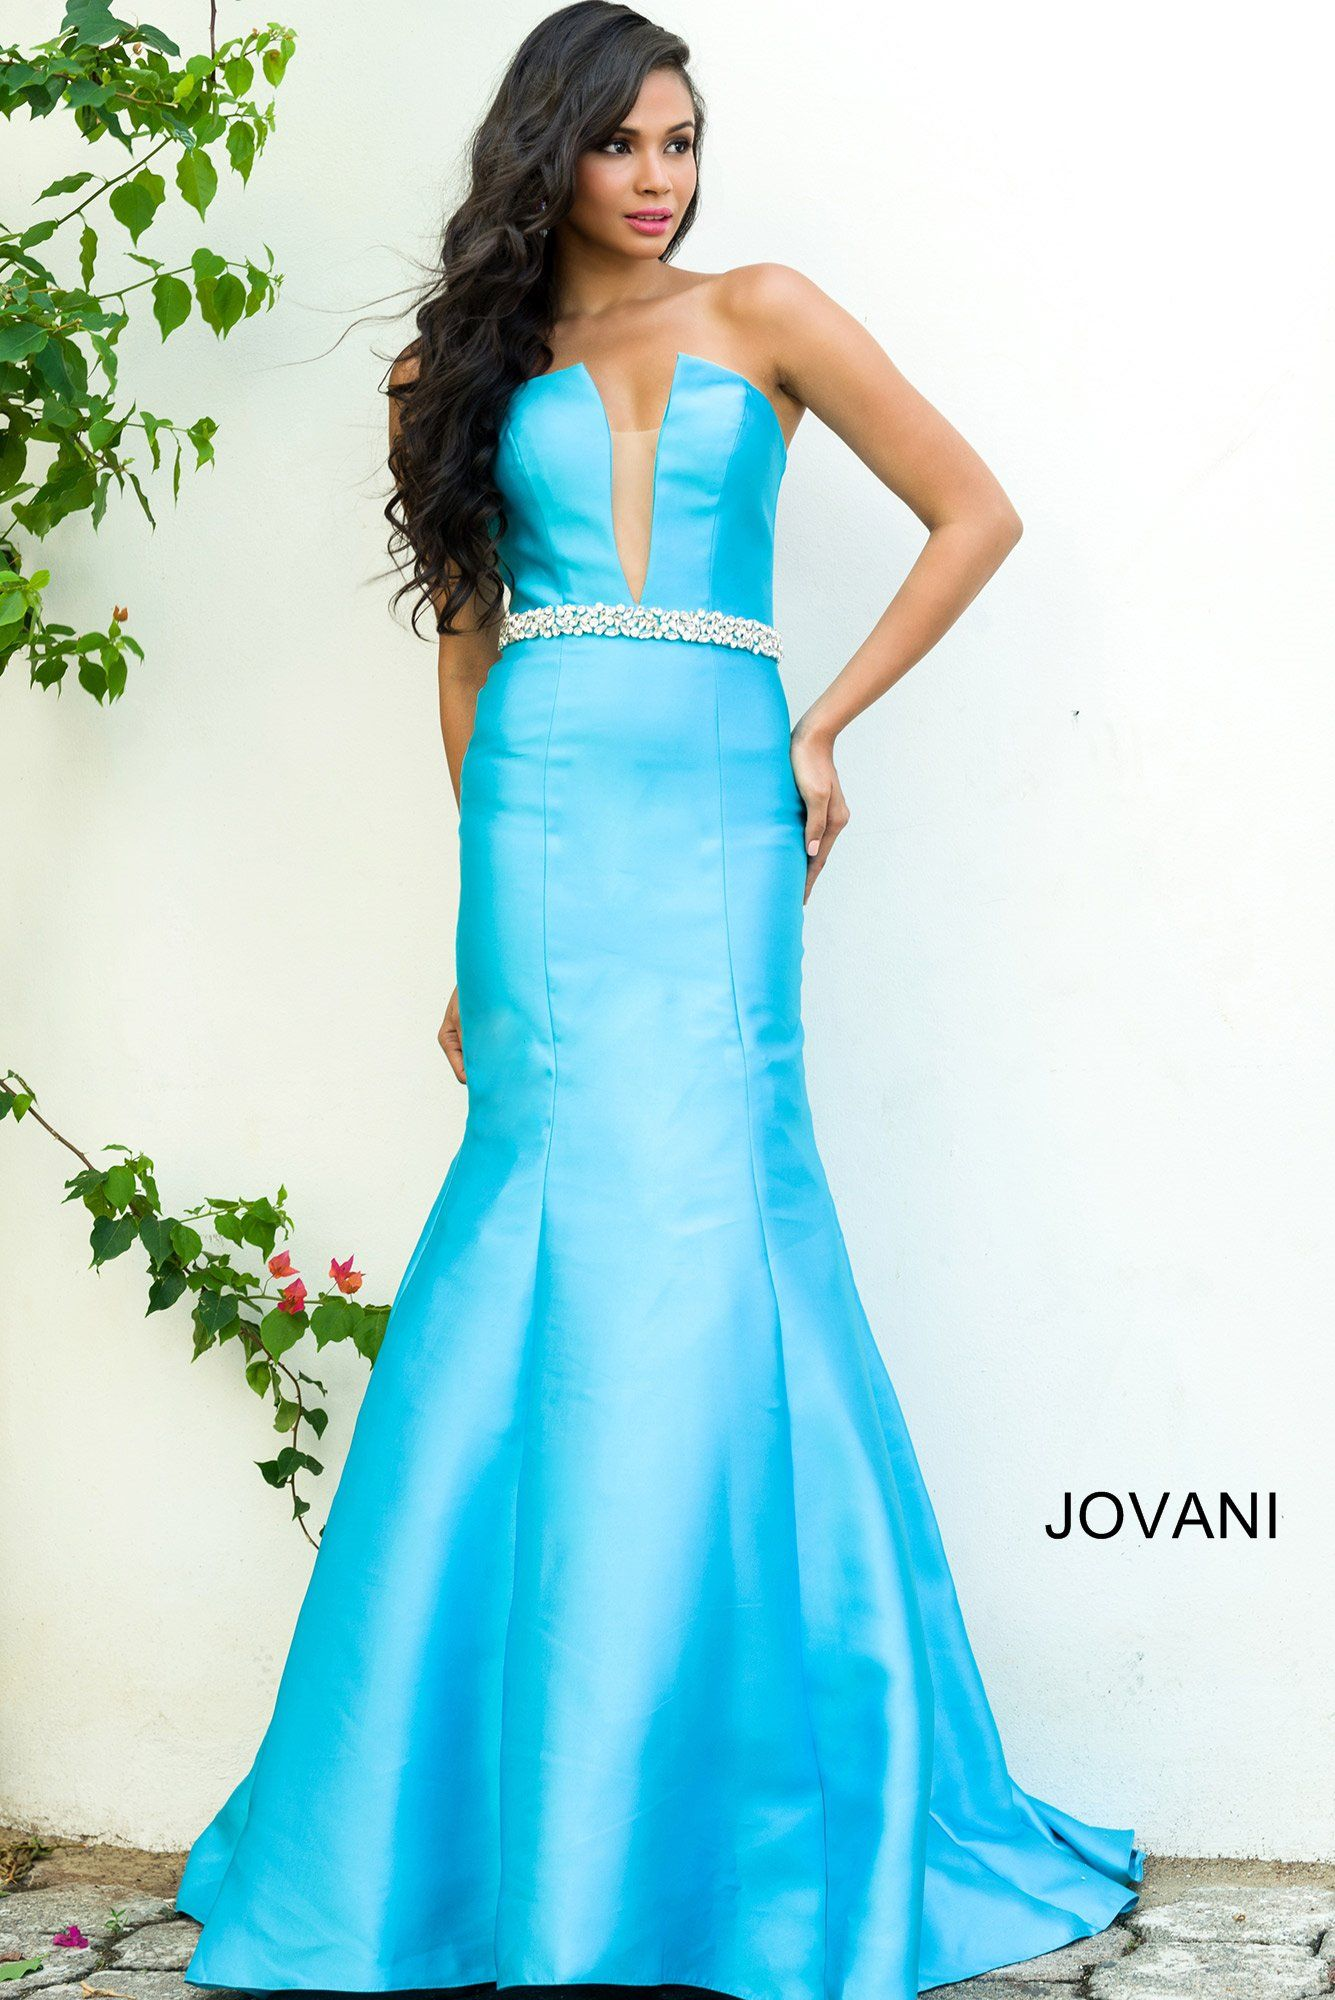 Enchanting Jovani Mermaid Prom Dress Pictures - All Wedding Dresses ...